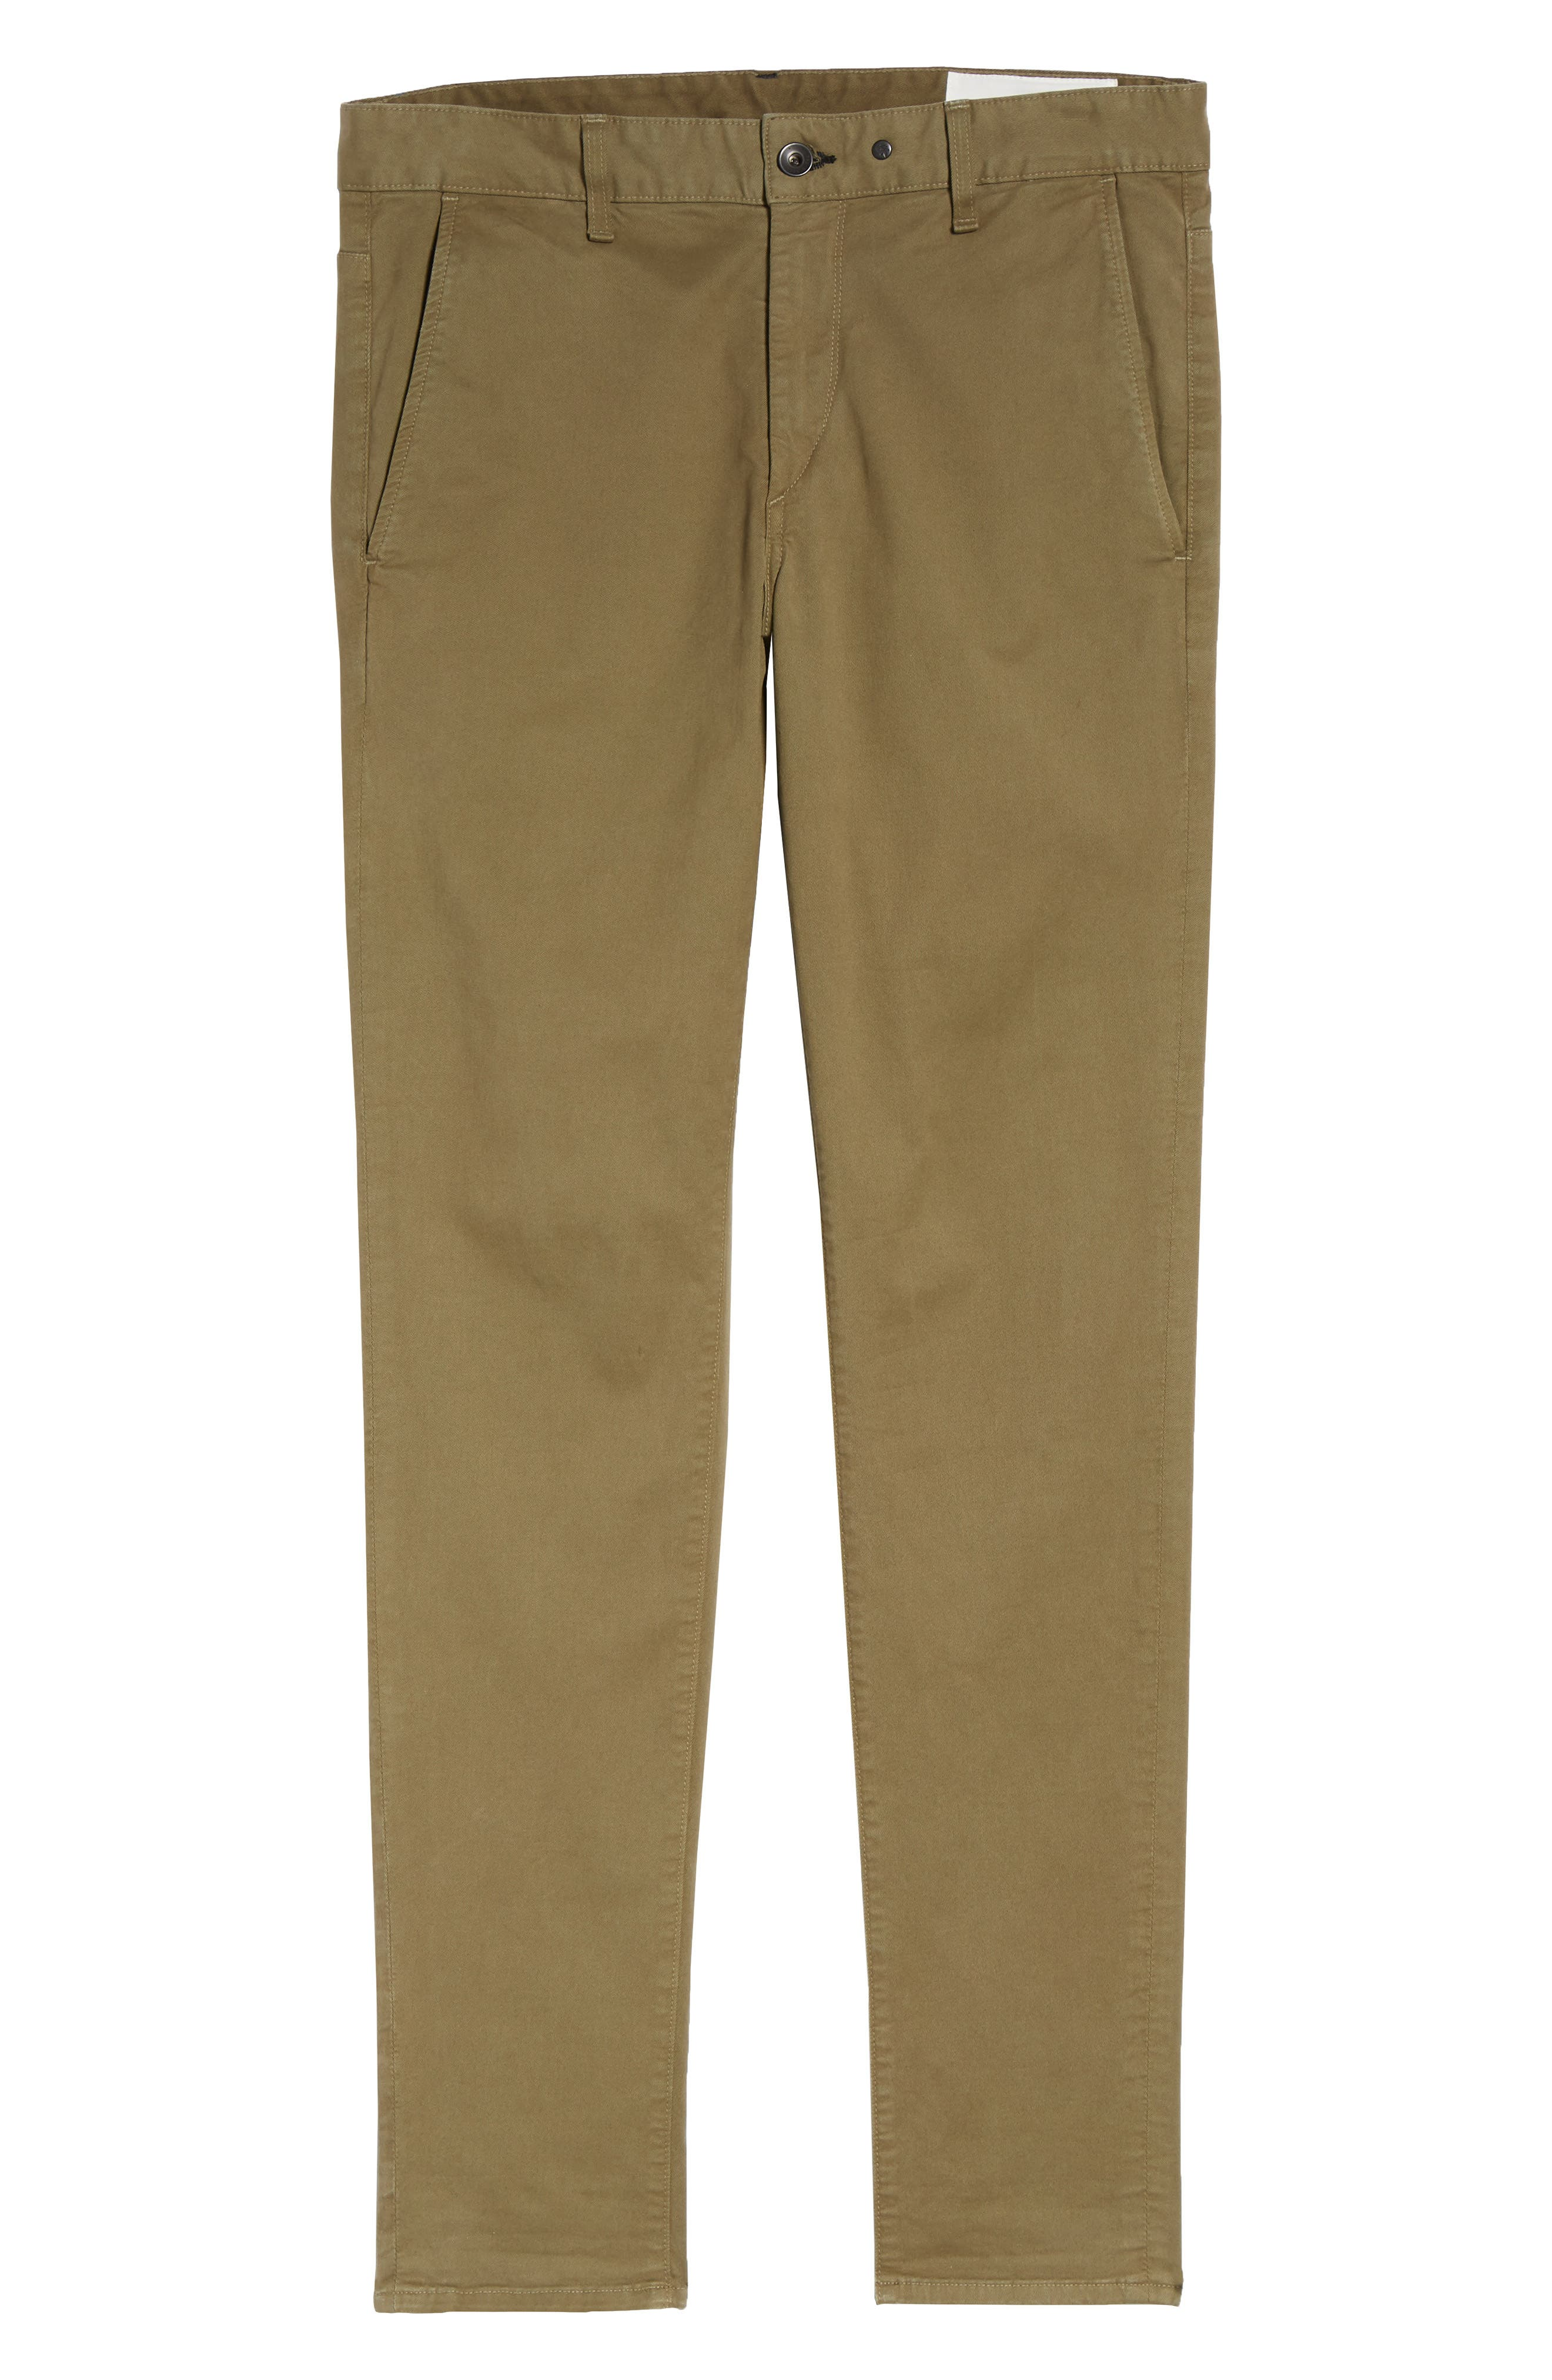 Fit 1 Chinos,                             Alternate thumbnail 6, color,                             ARMY GREEN